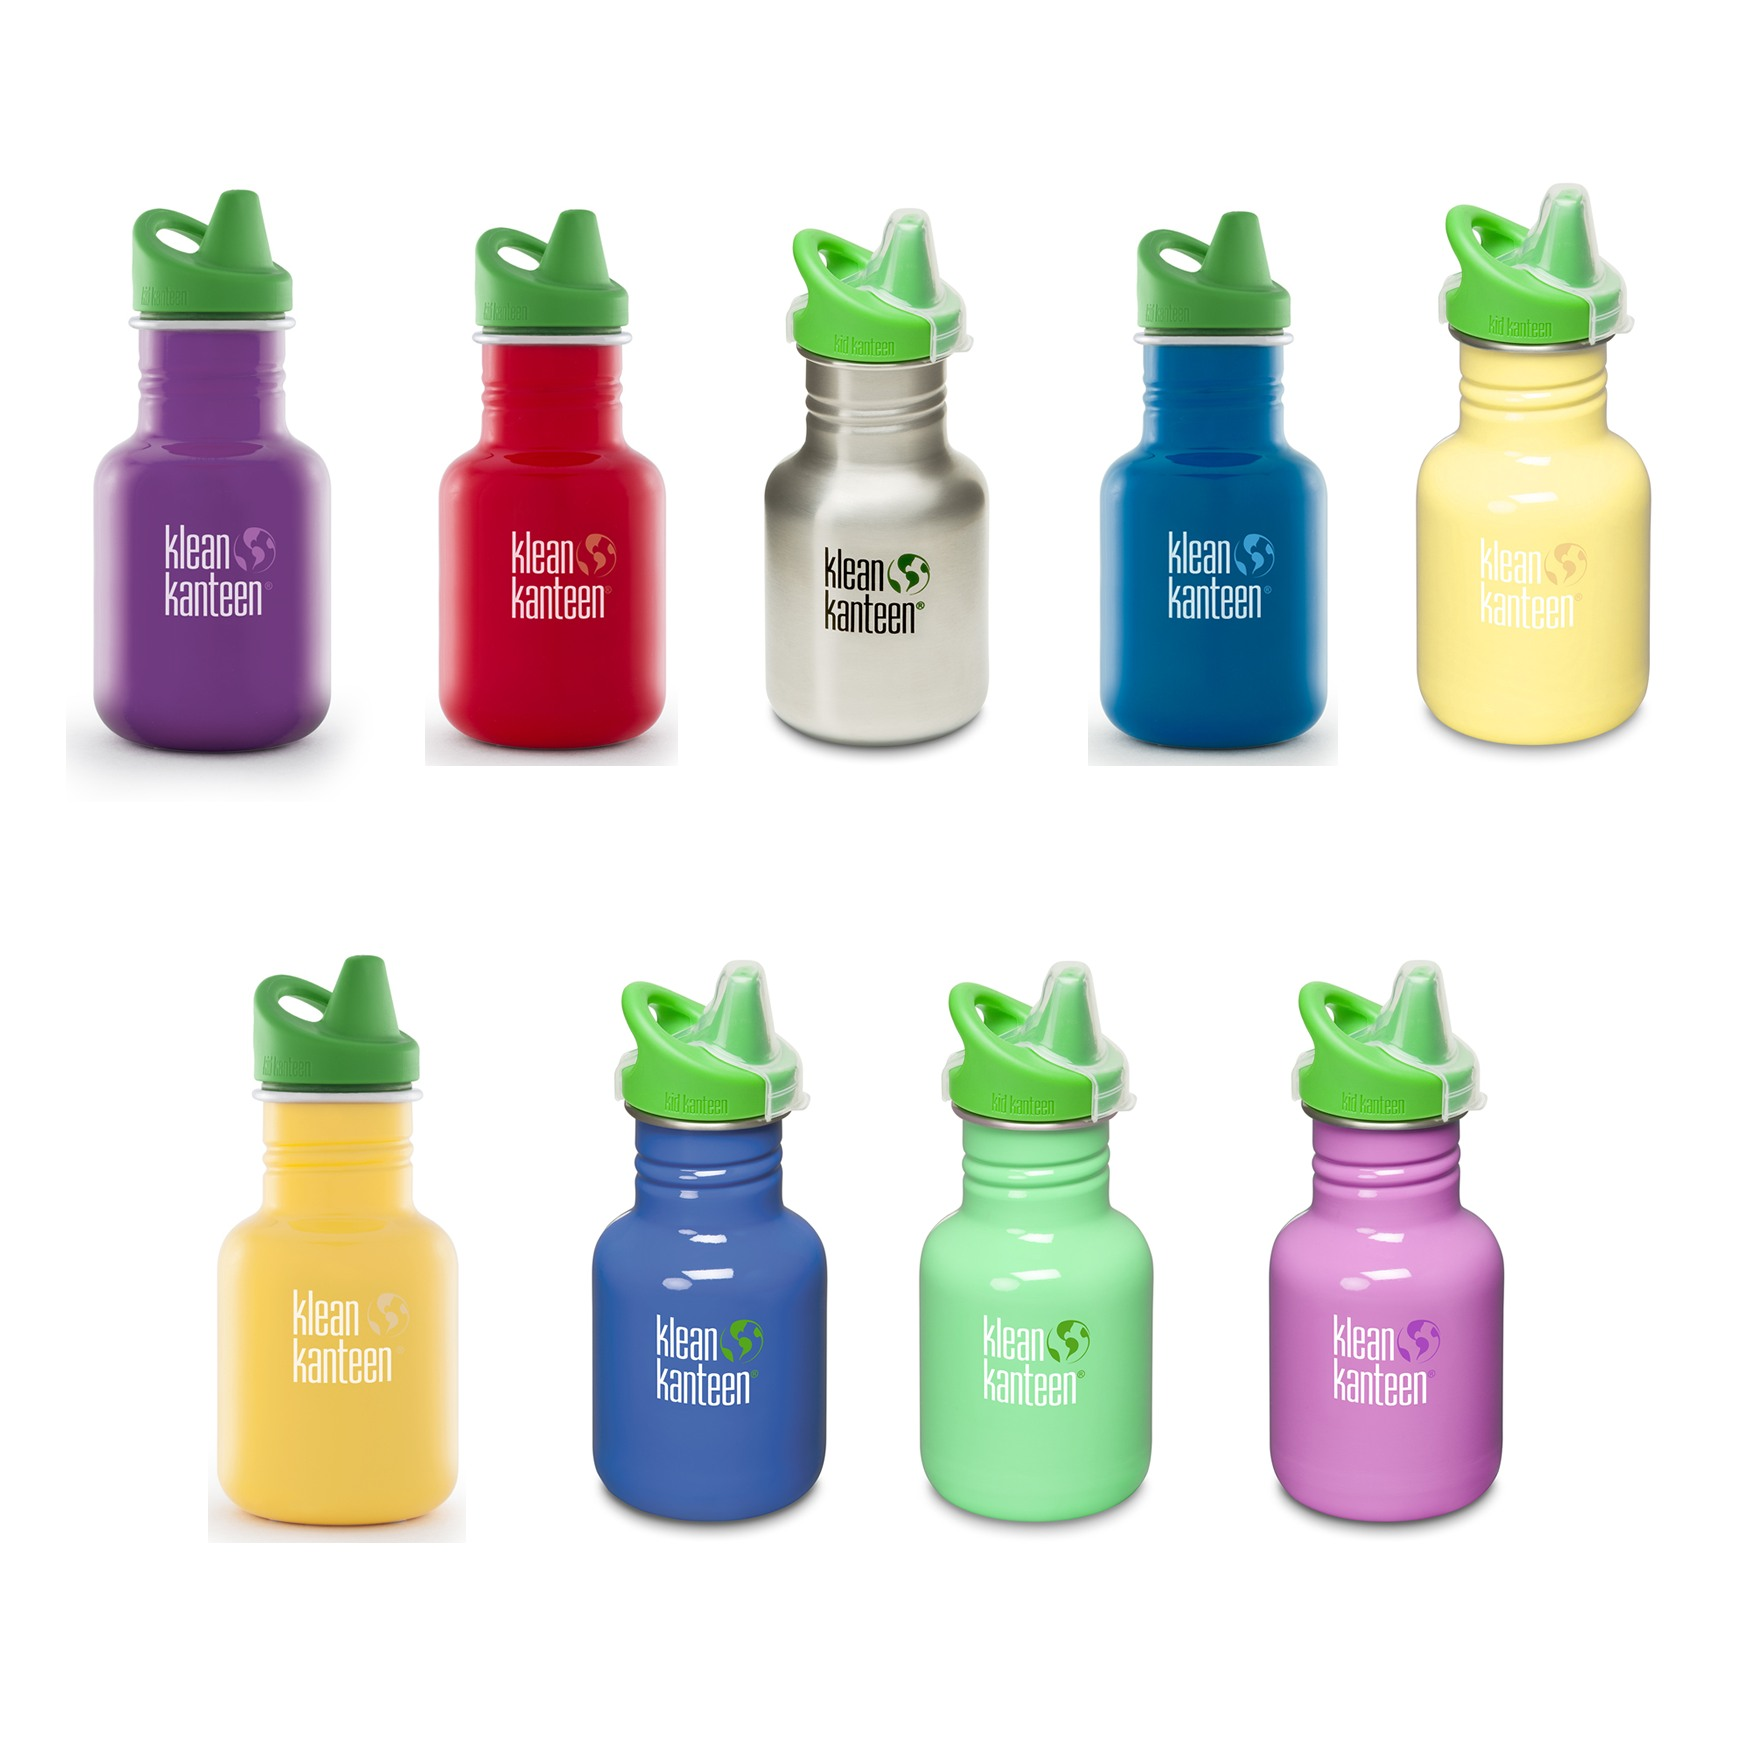 Klean Kanteen Sippy Cap Stainless Steel Kid Drinks Bottle